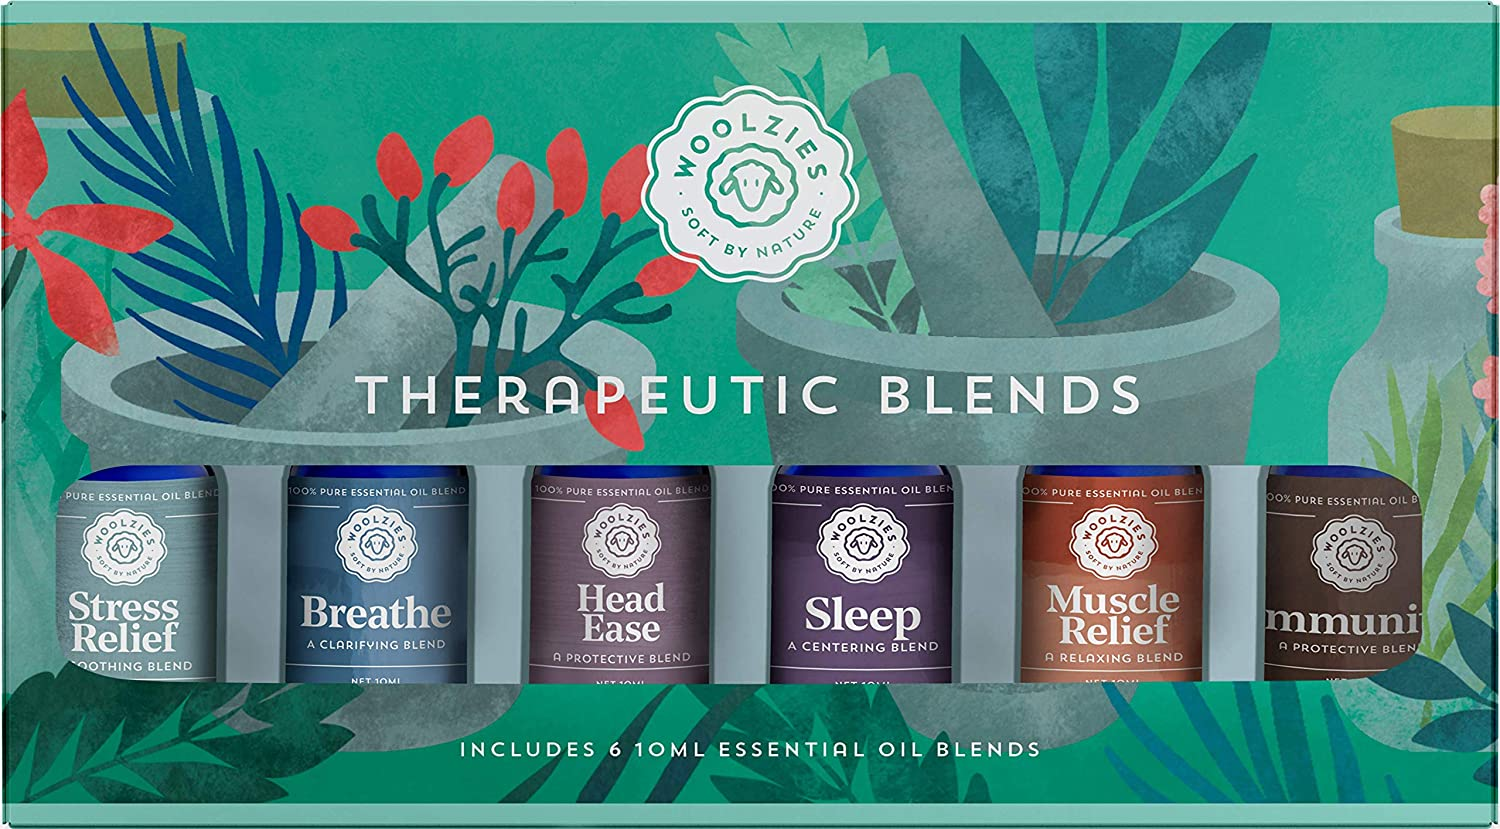 Woolzies Natural 100% Pure Therapeutic Essential oil Gift Set of 6   Good night, Breathe, Pain relief, Head Relief, Stress relief, Immunity Blend-Thieves Blend   For Diffusion/Internal/Topical Use